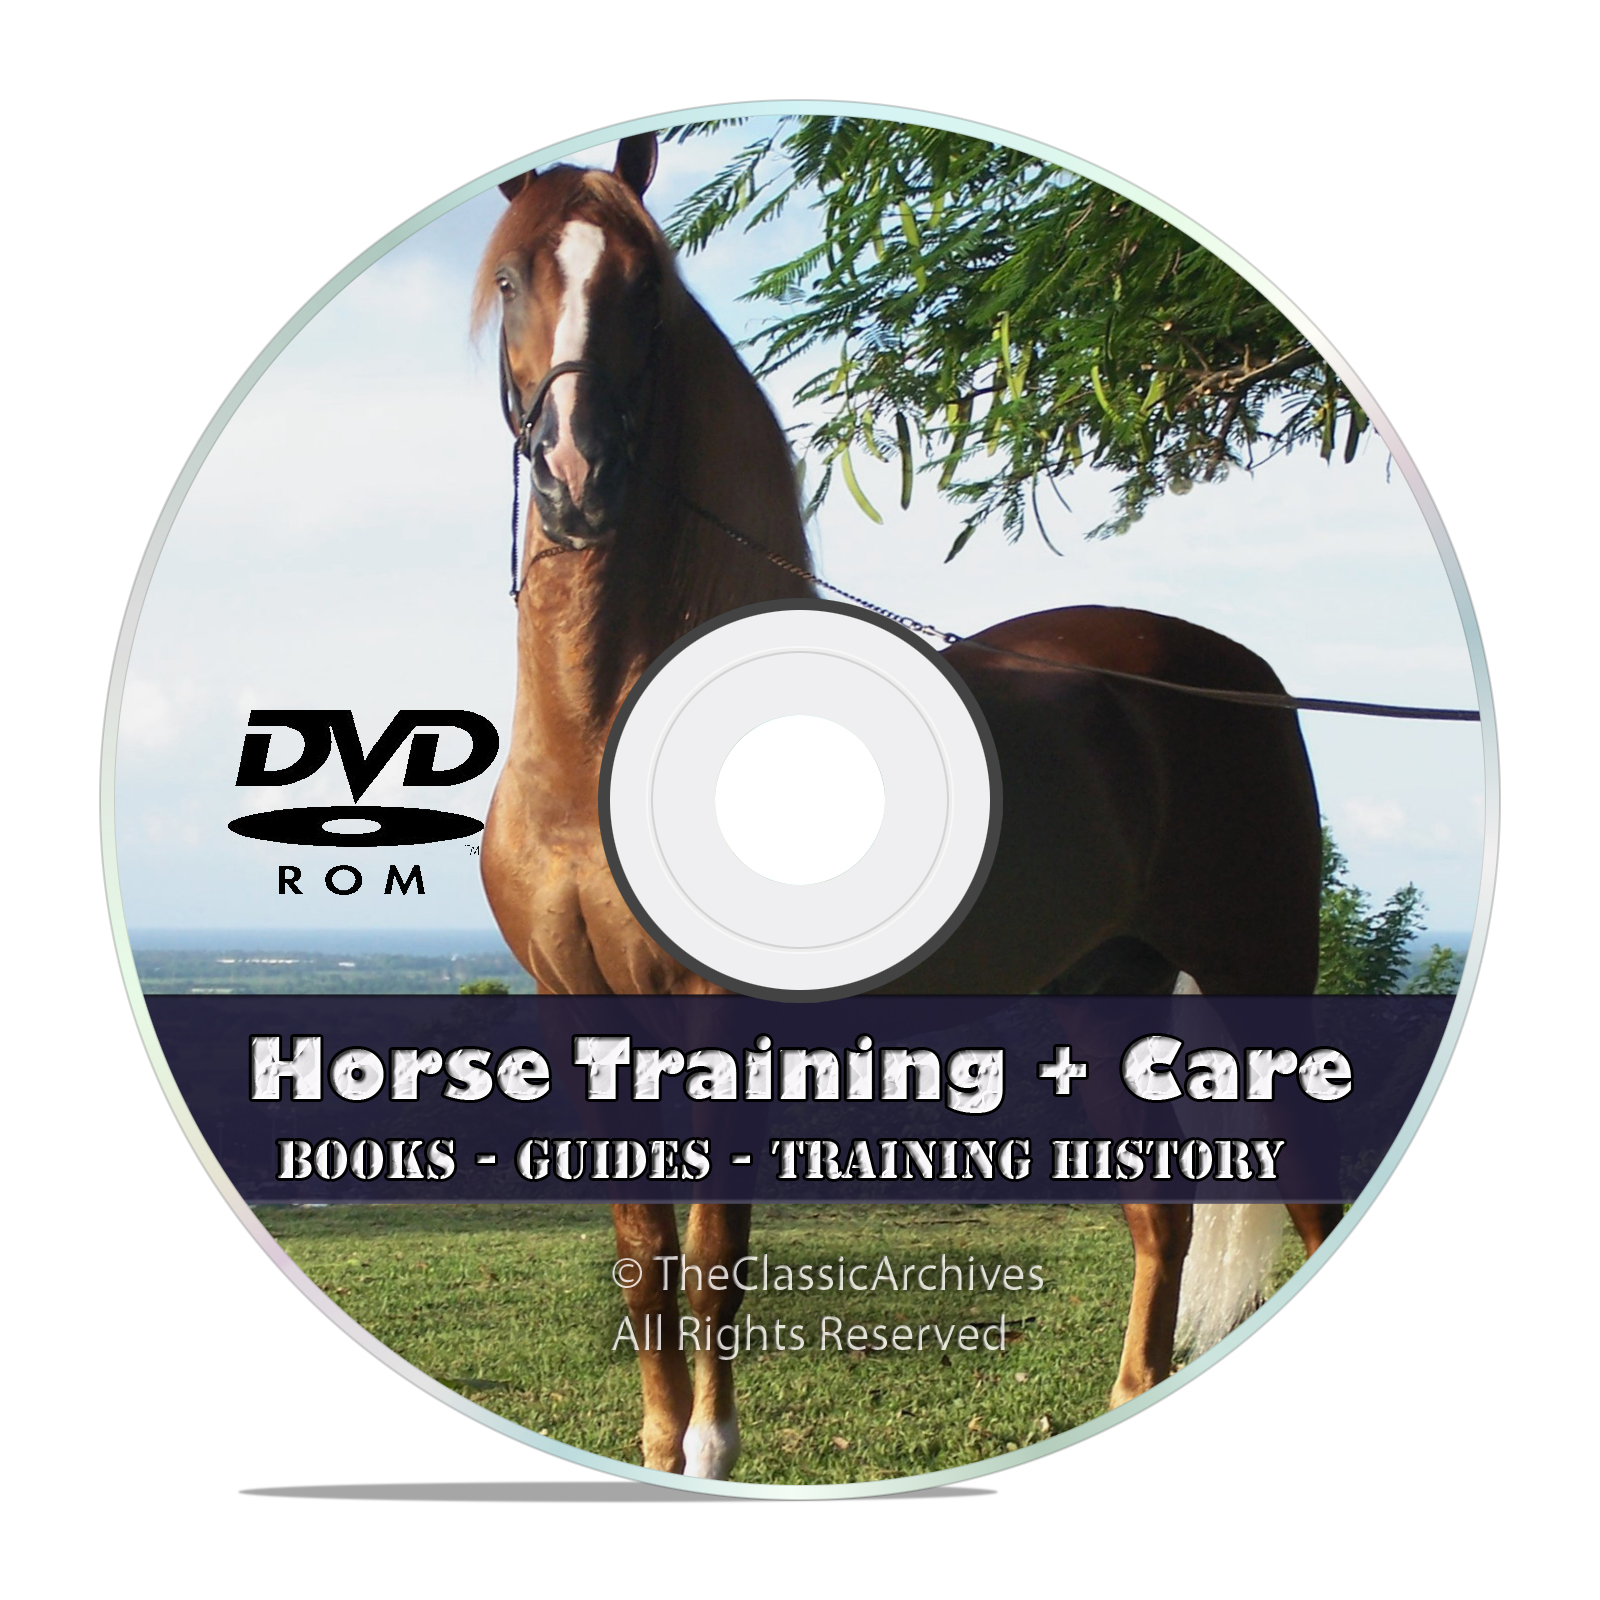 Classic How To Do Horse Training Taming Library, Make a Harness Guides DVD